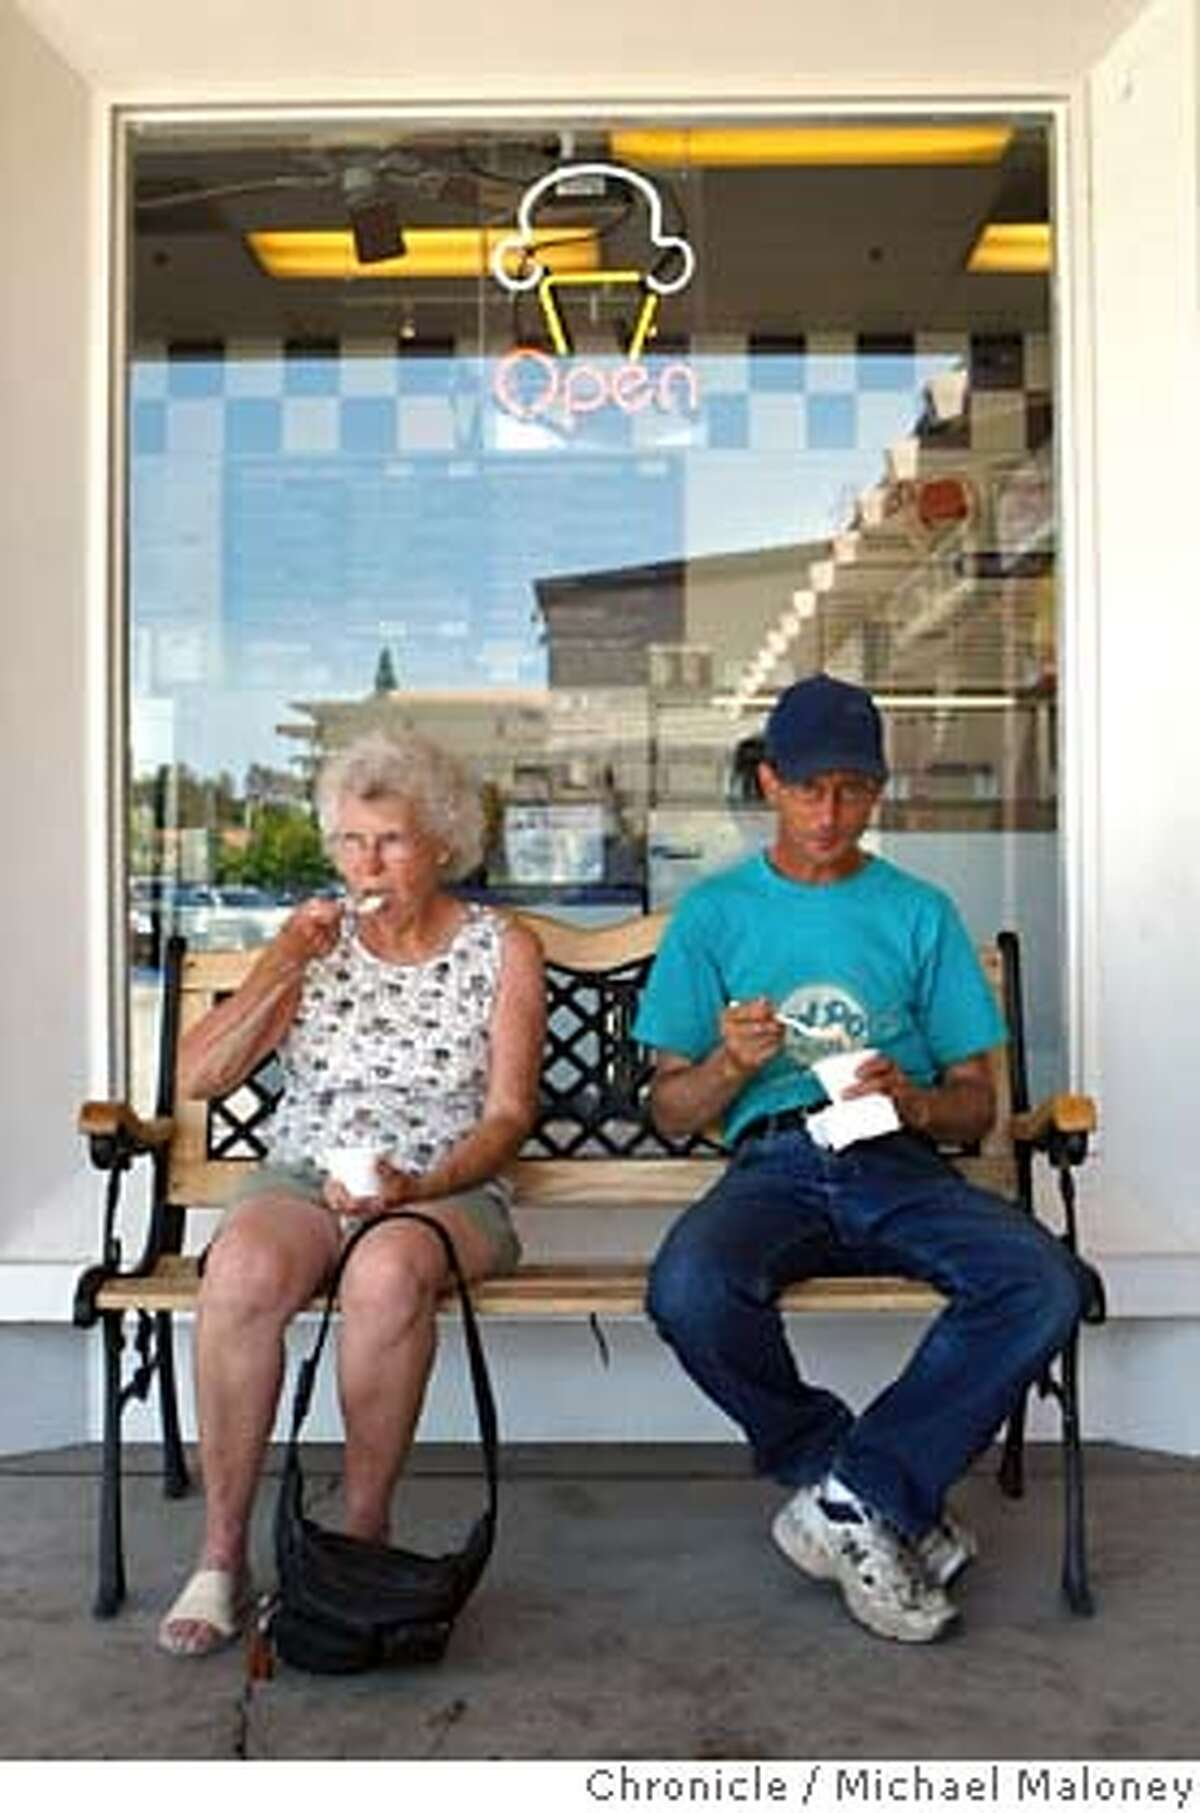 Dottie Storz of San Jose and her nephew David Fuss of San Pablo escape the heat by sitting in the shade, enjoying their ice cream in Alamo, Calif. on May 15, 2008. Photo by Michael Maloney / San Francisco Chronicle